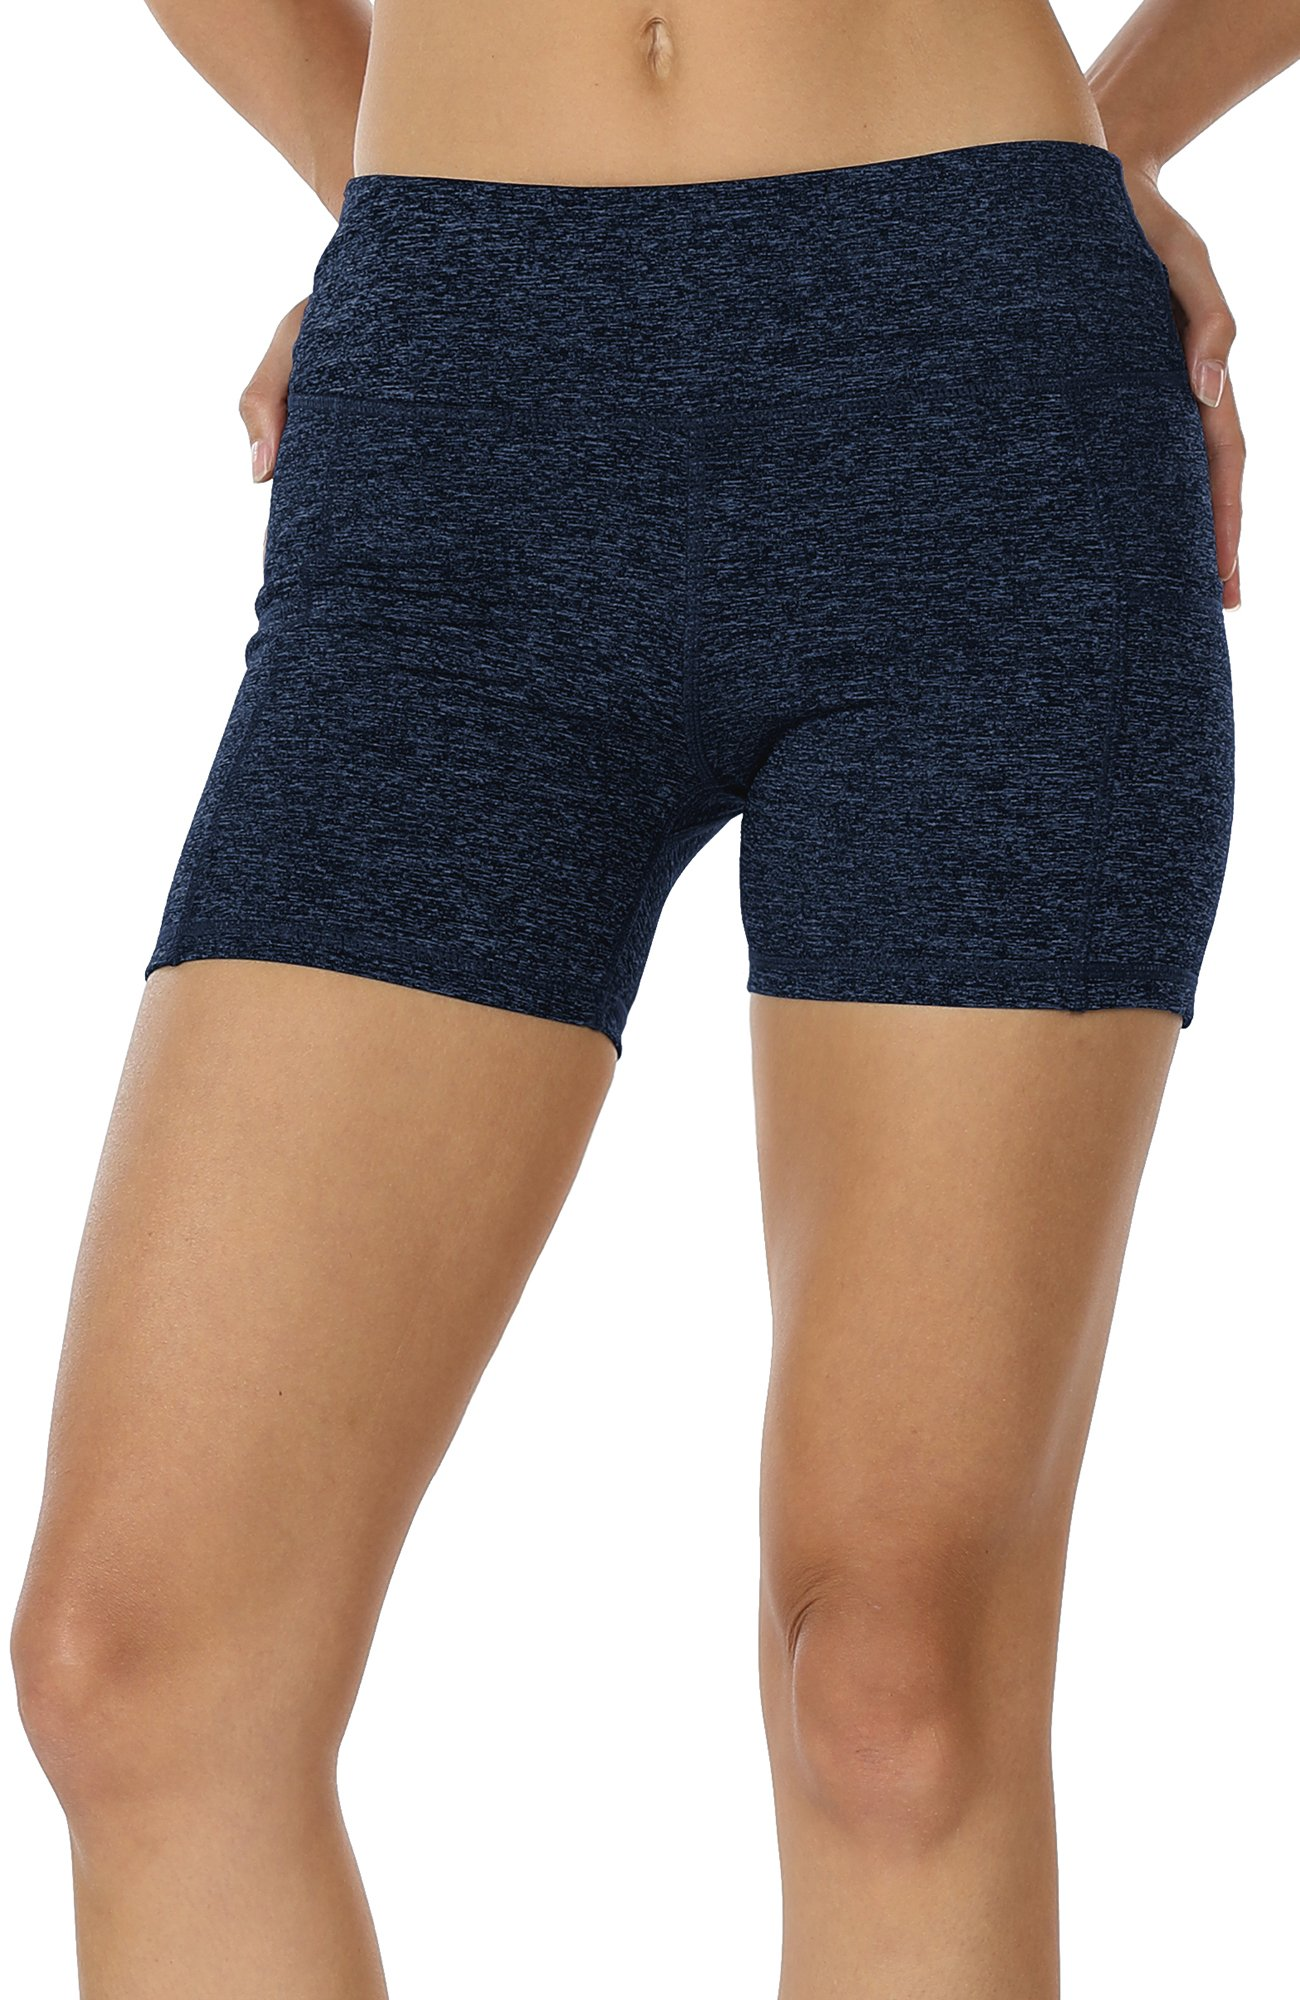 db239d00b029e icyzone Workout Running Shorts for Women - Yoga Exercise Lounge Athletic  Activewear Compression Shorts with Pockets & Drawstring (M, Navy)